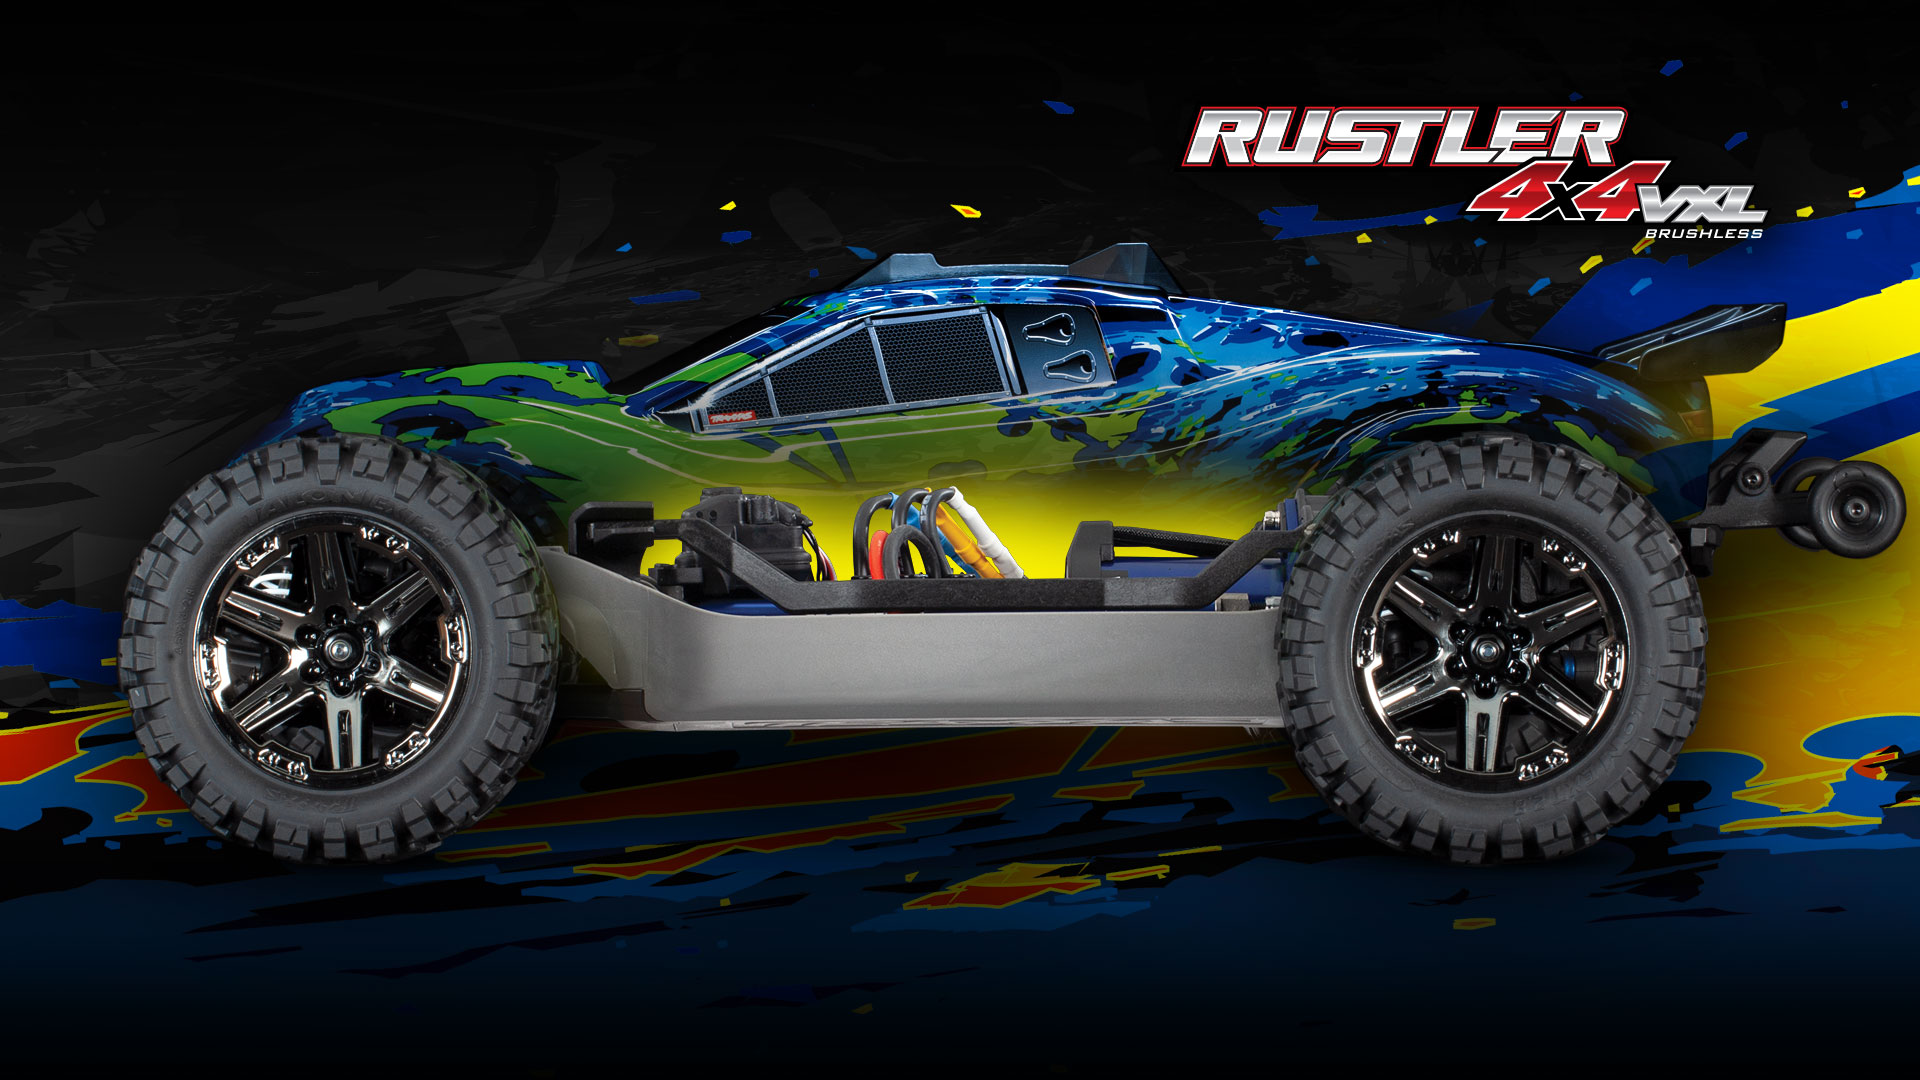 https://traxxas.com/products/landing/rustler-4x4-vxl/images/overview-slideshow-low-cg-chassis.jpg